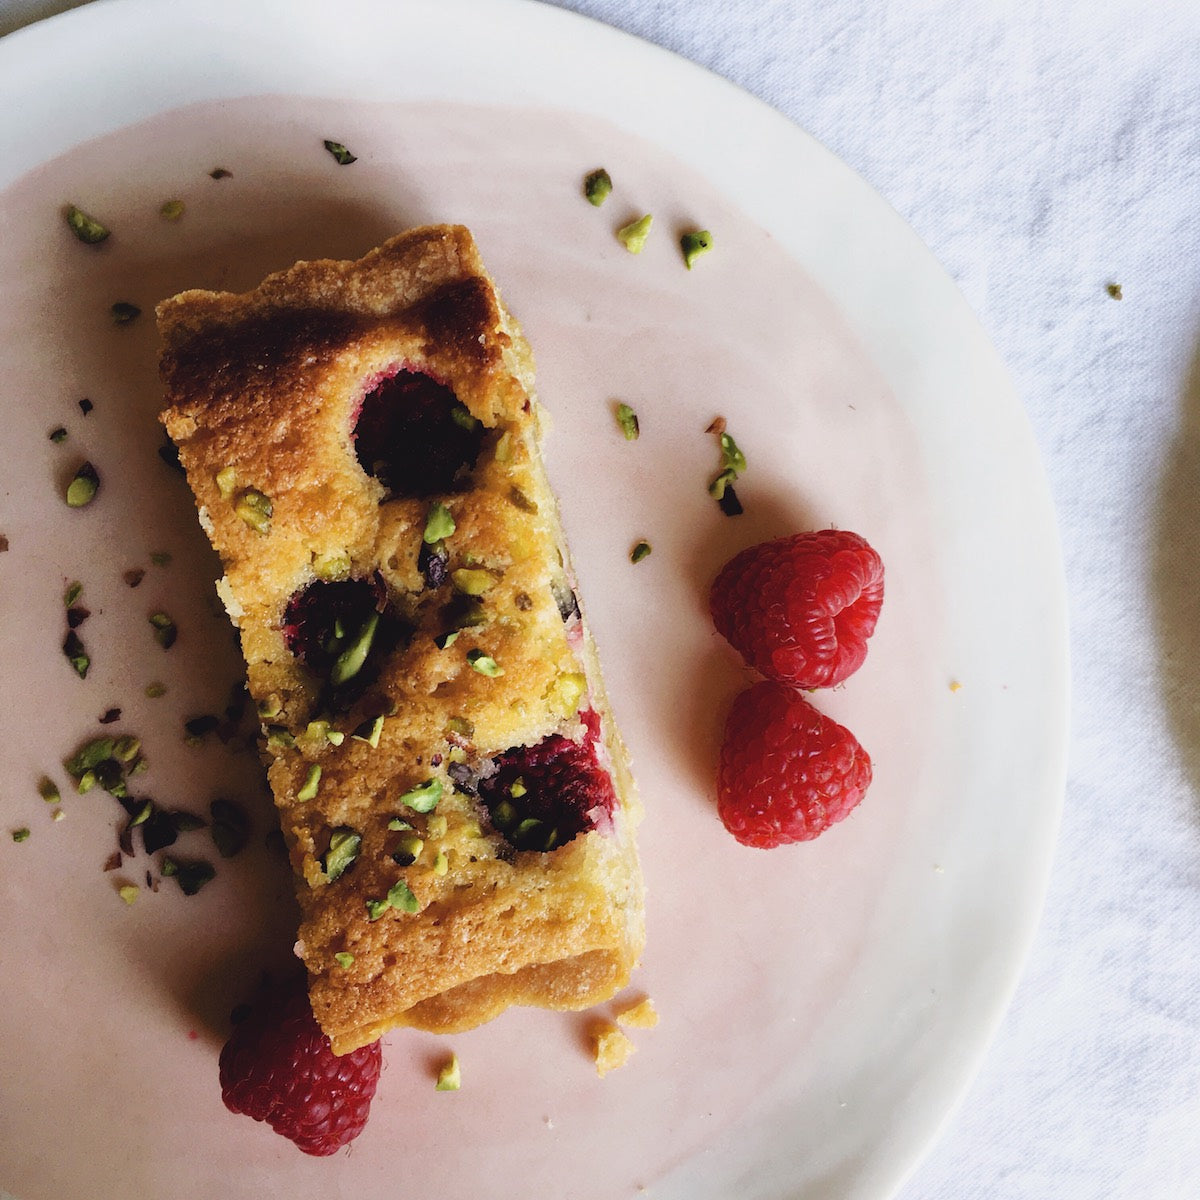 Frangipane Tart with Raspberries & Pistachios from Bronte Recipe